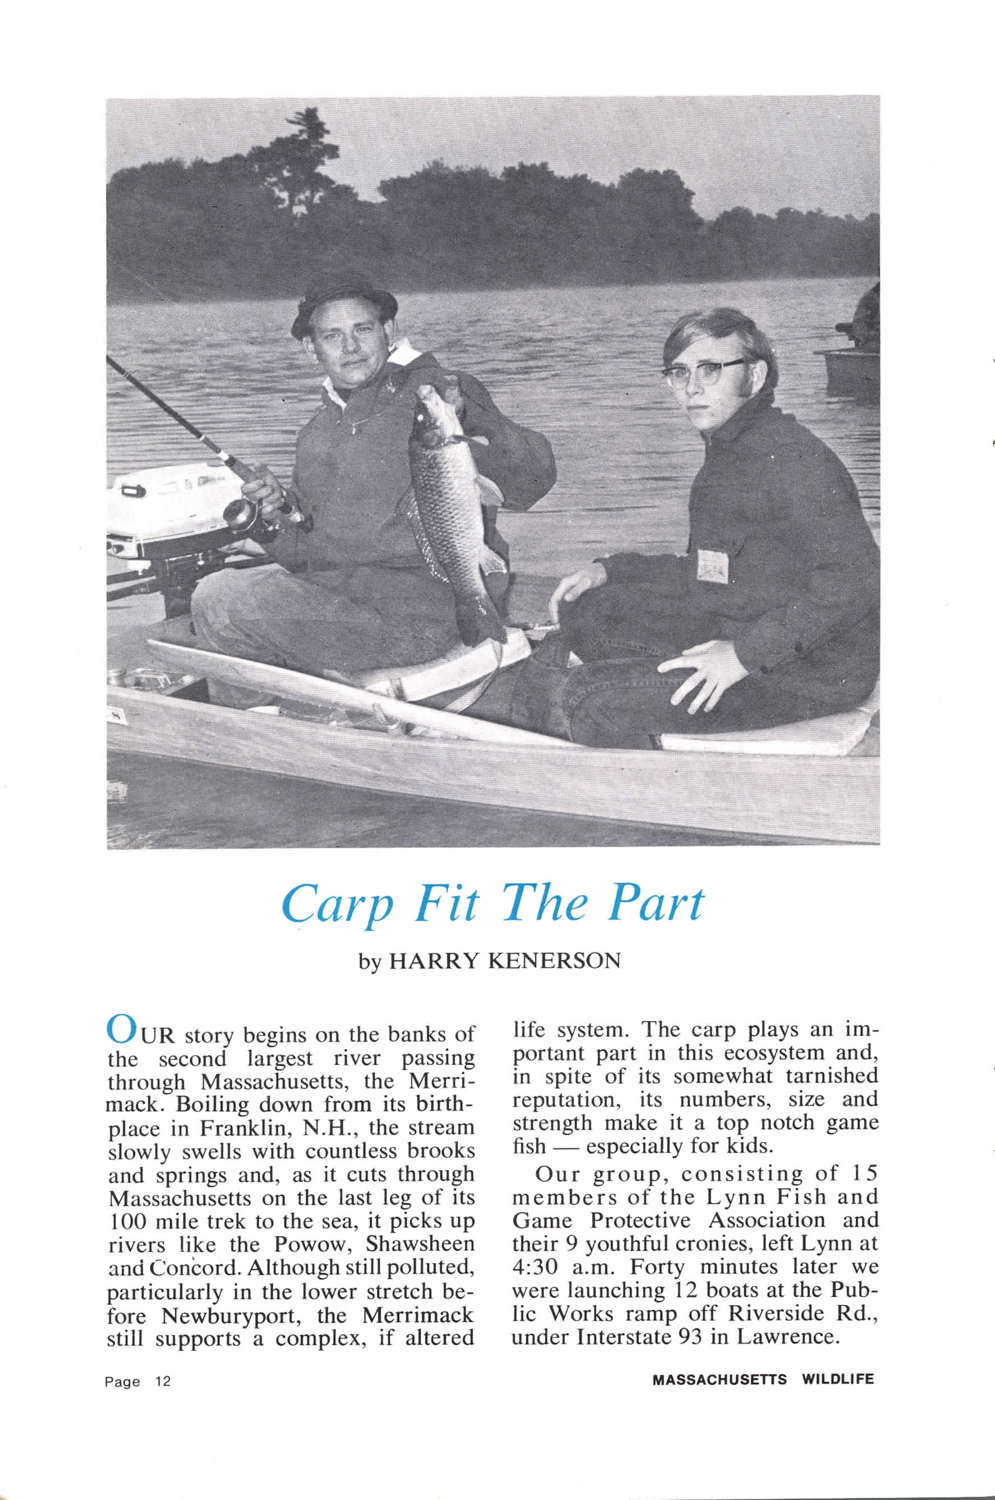 MassWildLife-Magazine_1970_jul-aug_carp-fit-the-part-3.jpg